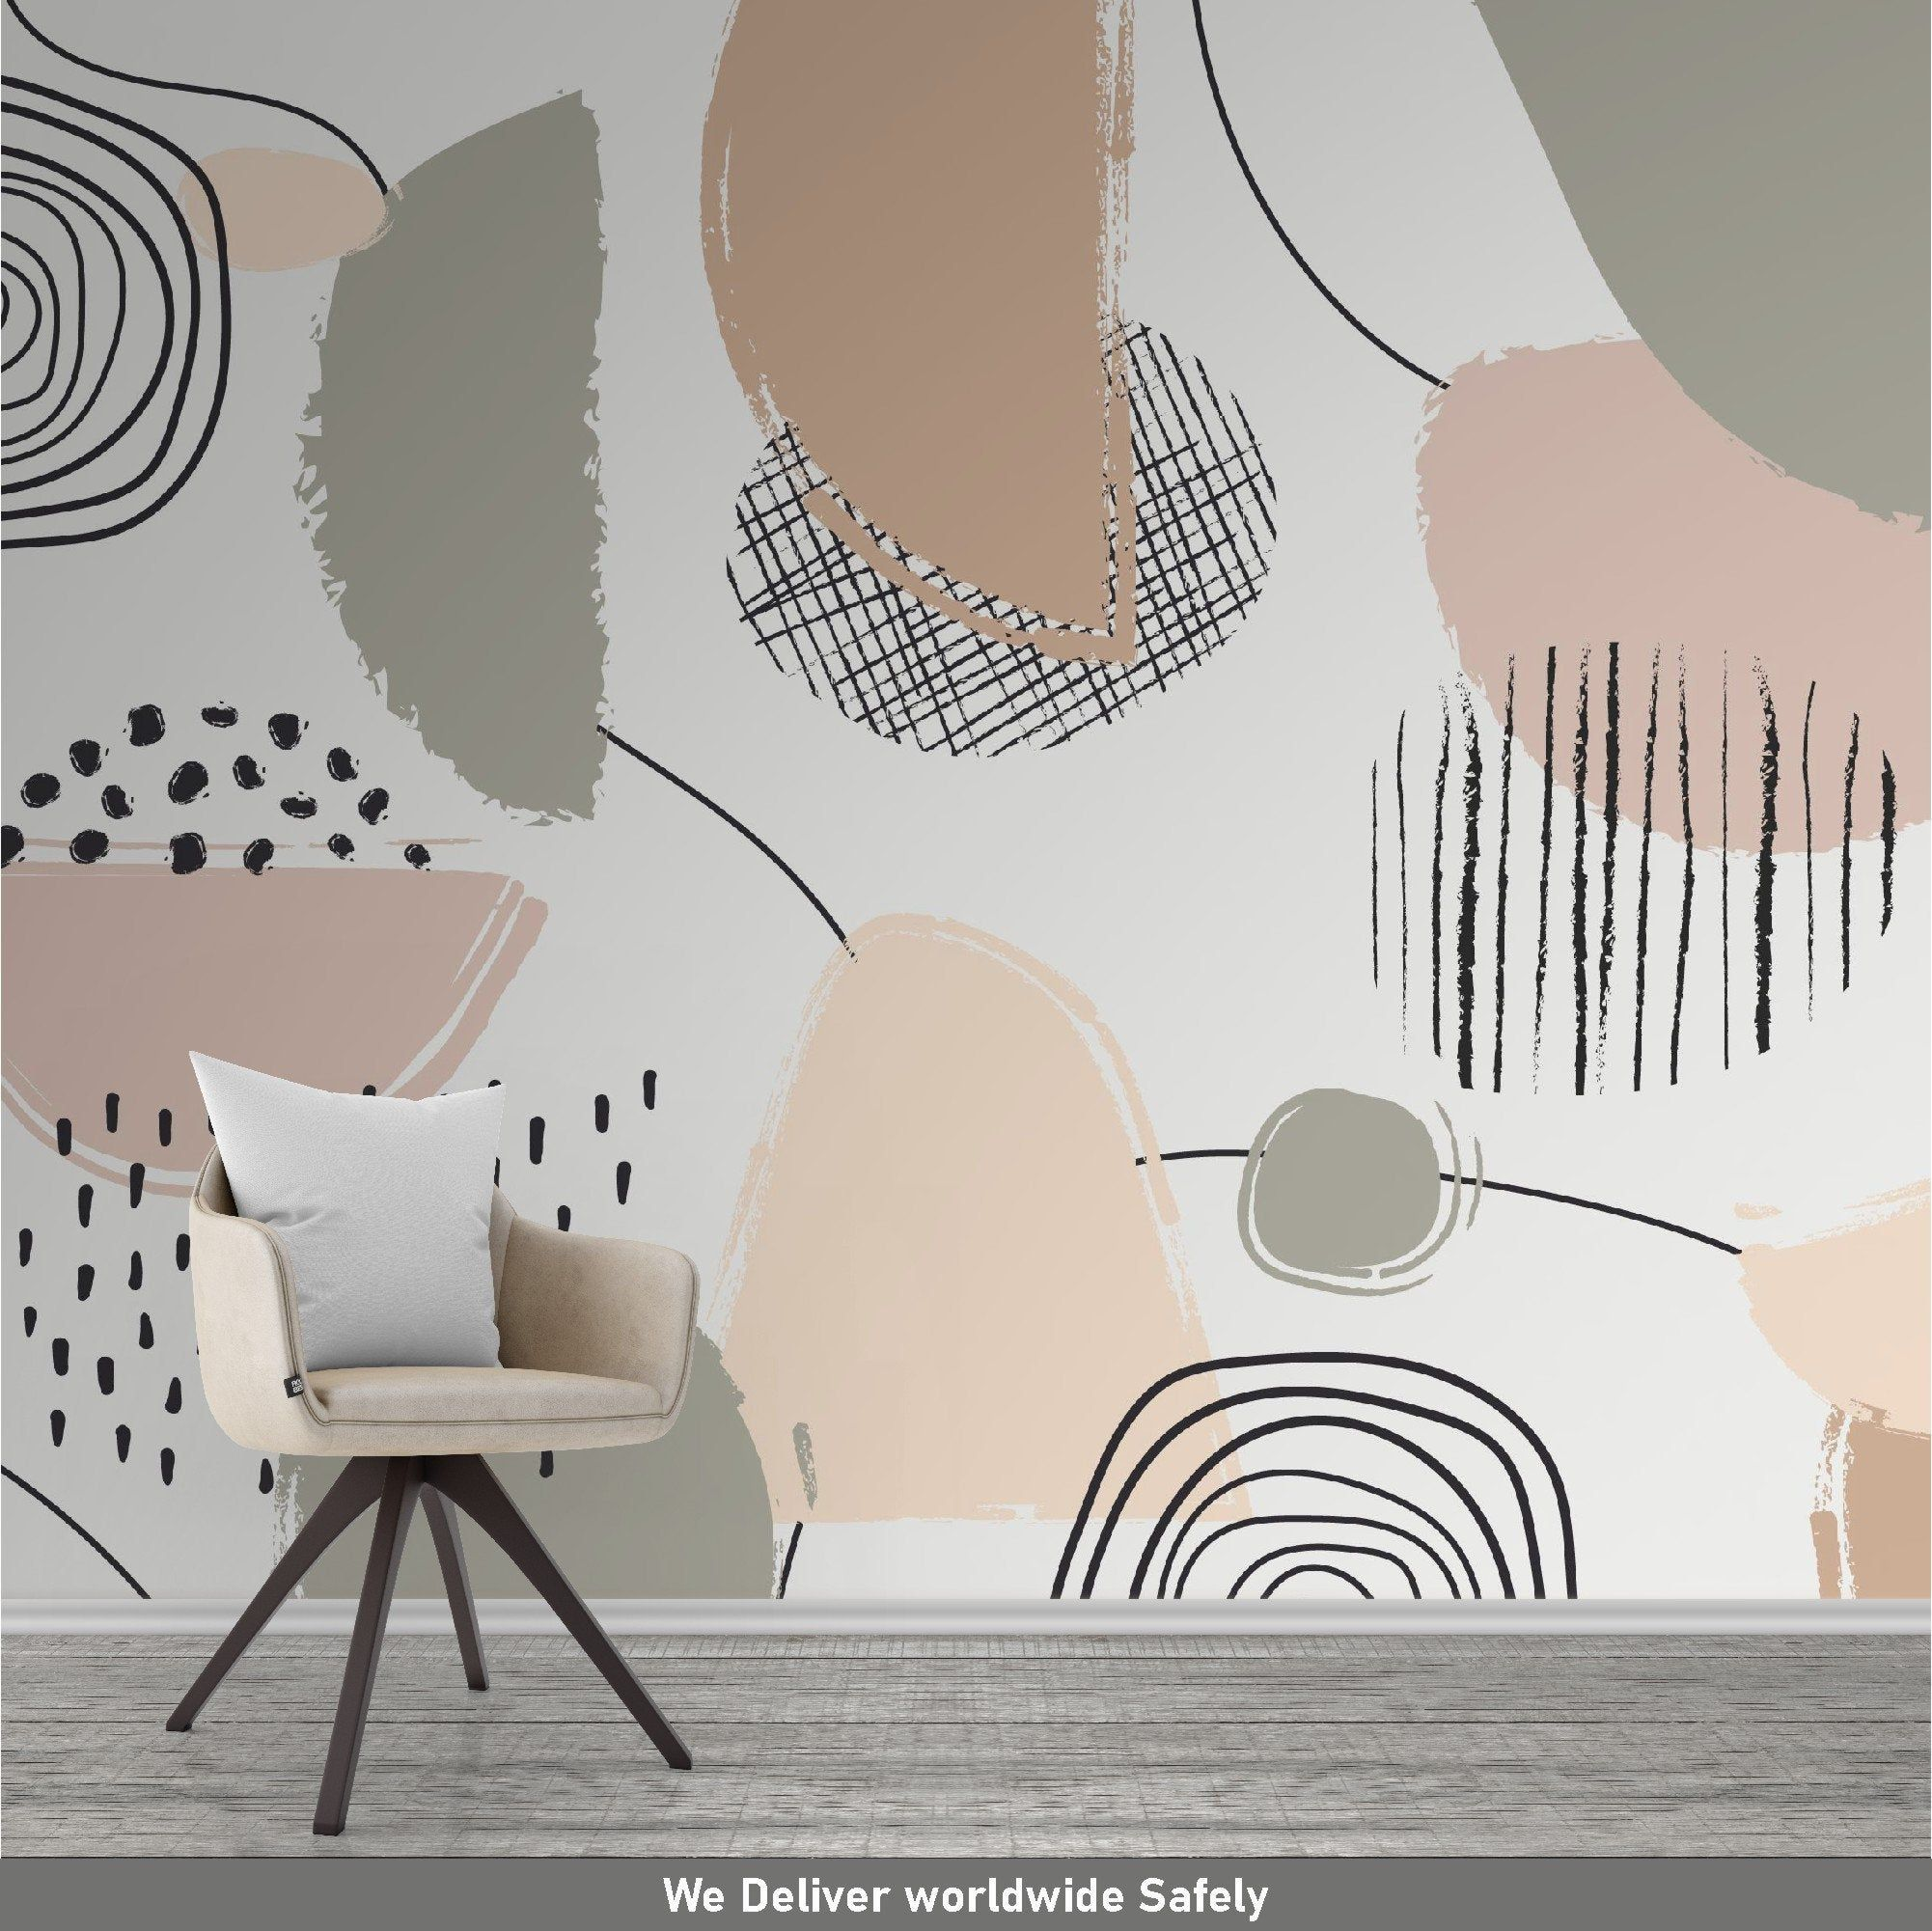 Abstract Wallpaper Pastel Color Mural Peel And Stick Etsy Abstract Wallpaper Mural Mural Wallpaper